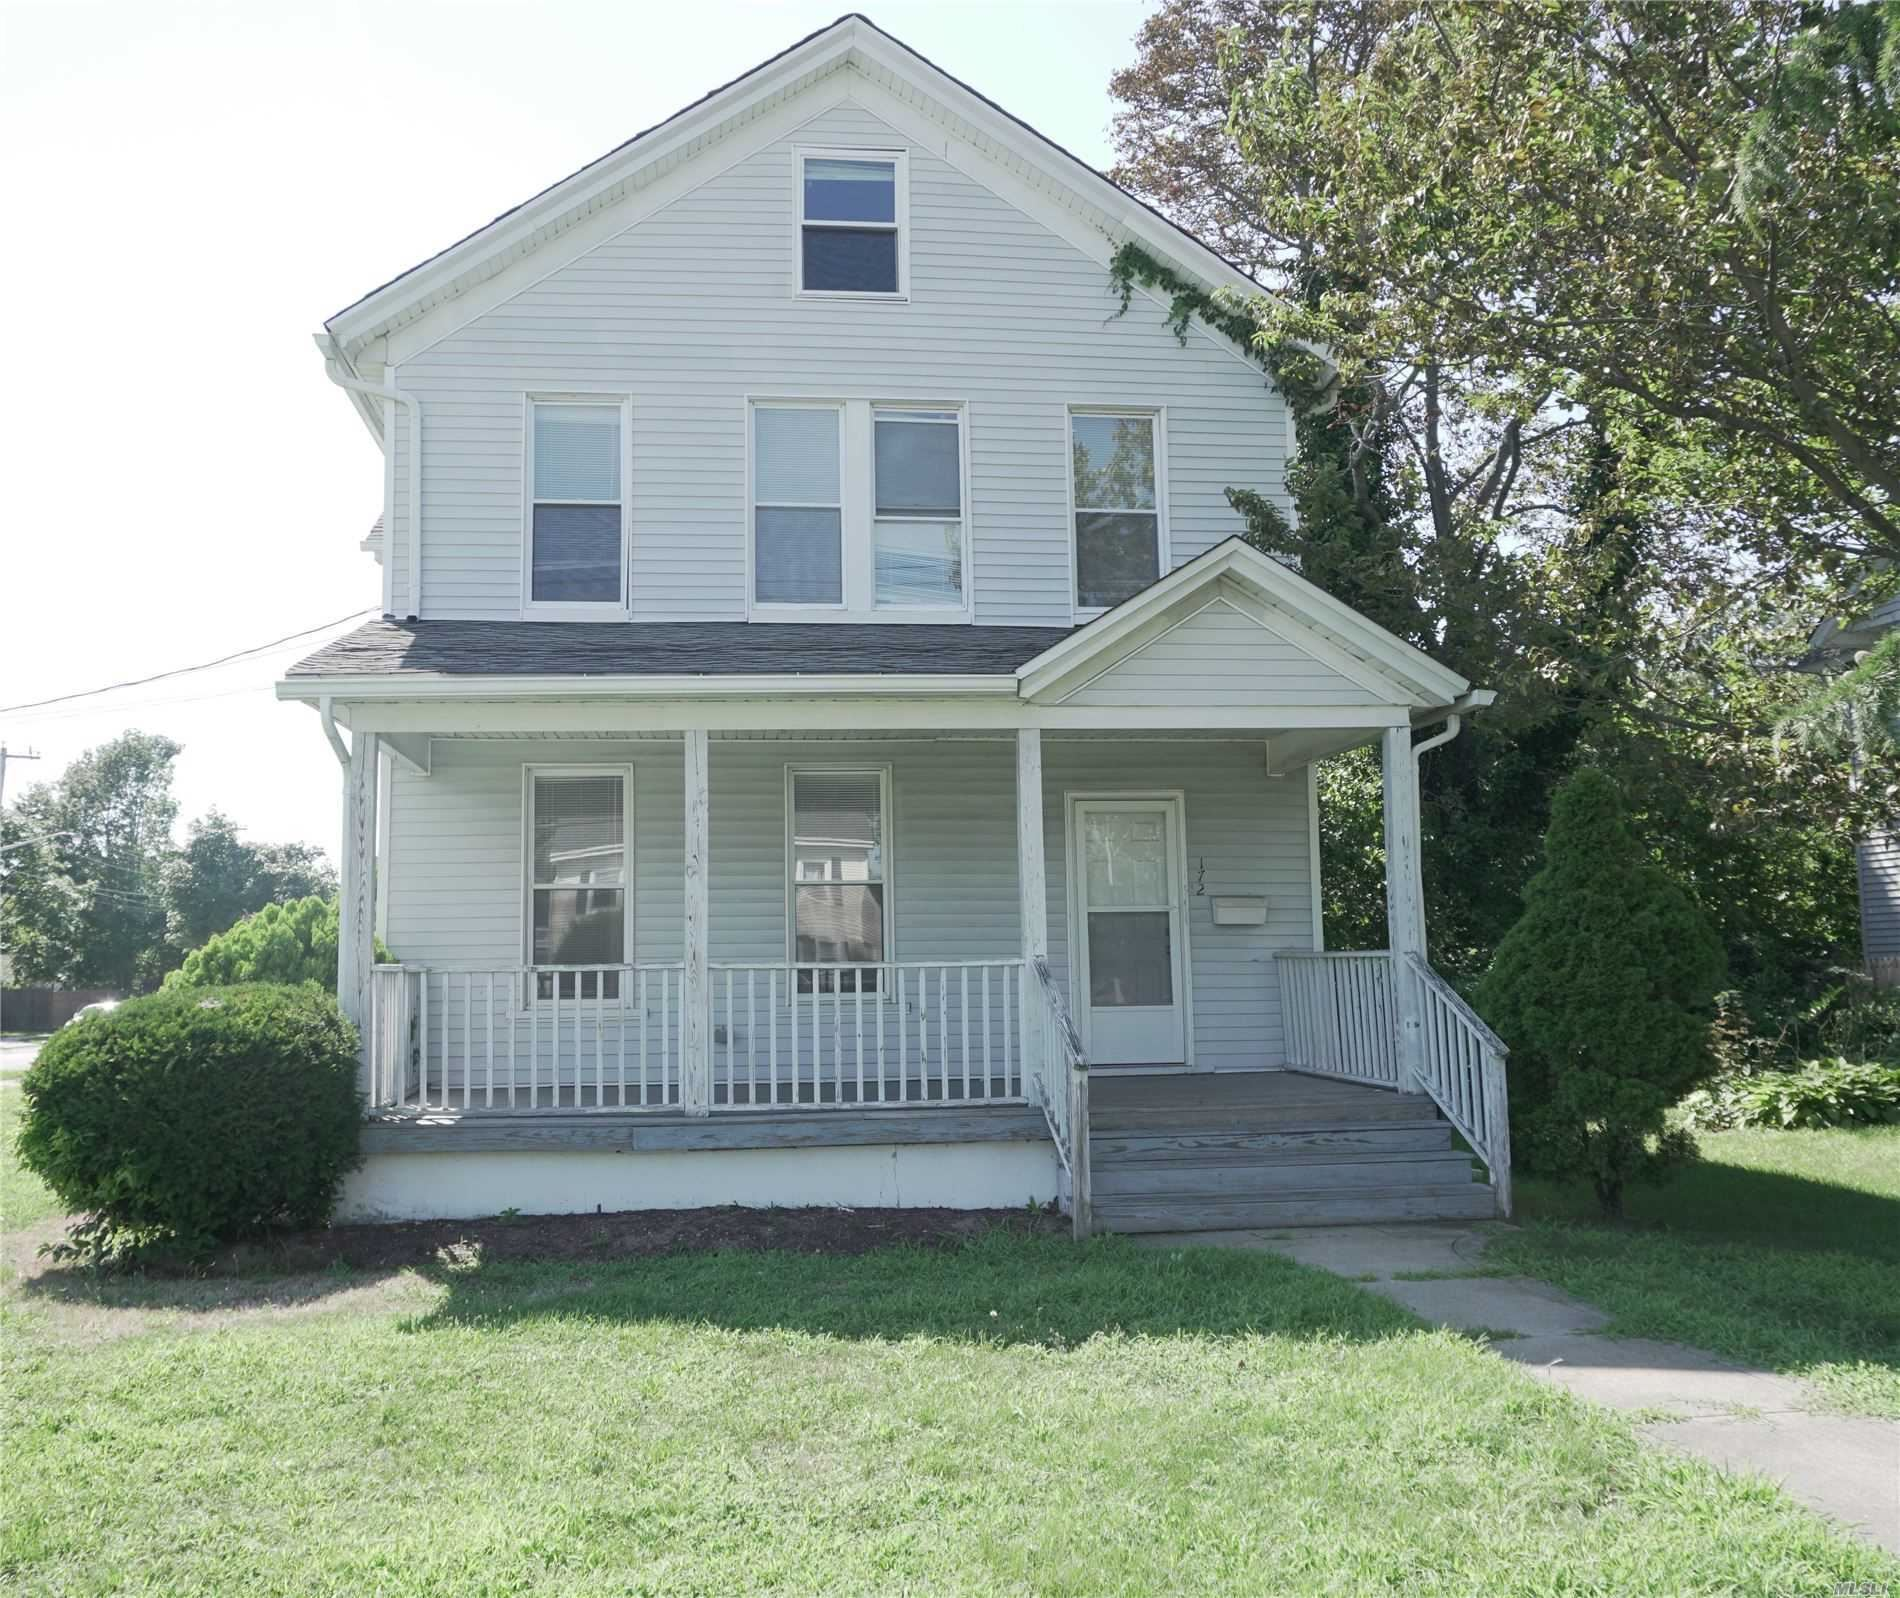 172 N Ocean Avenue, Patchogue, NY 11772 - MLS#: 3240287